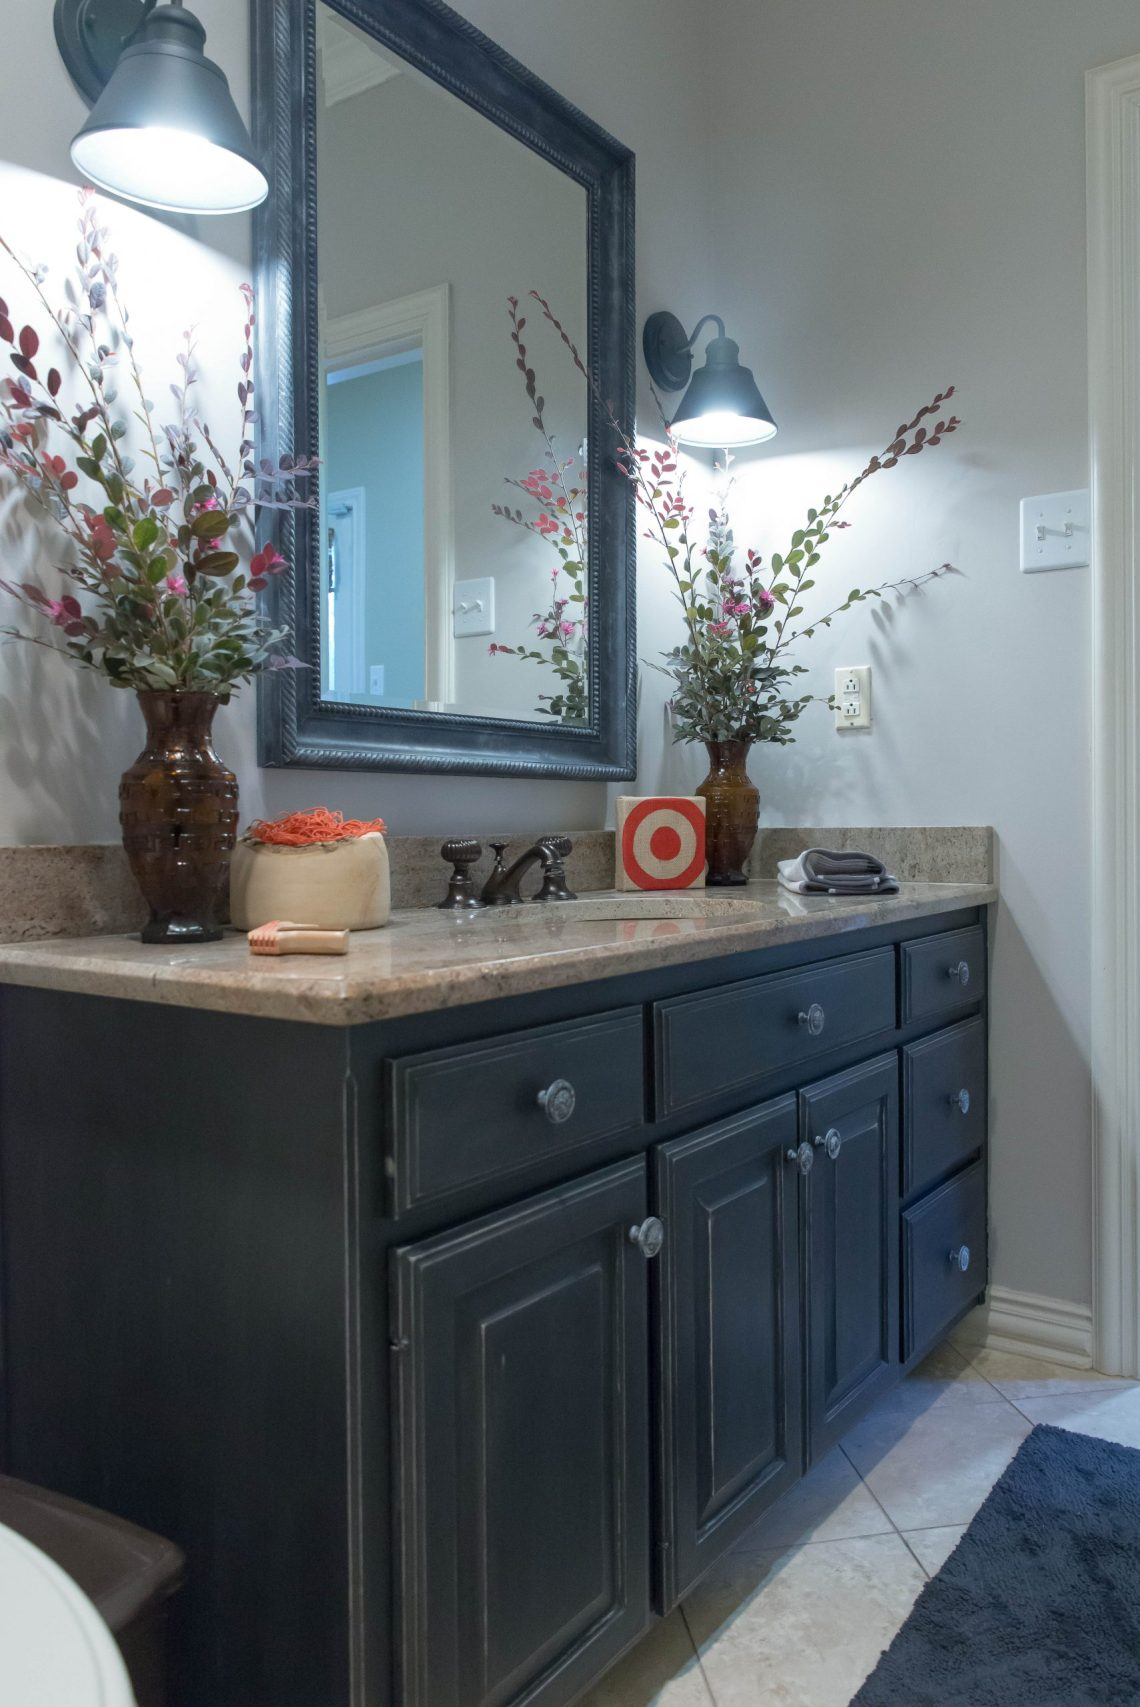 How to Paint Cabinets with Chalk Paint